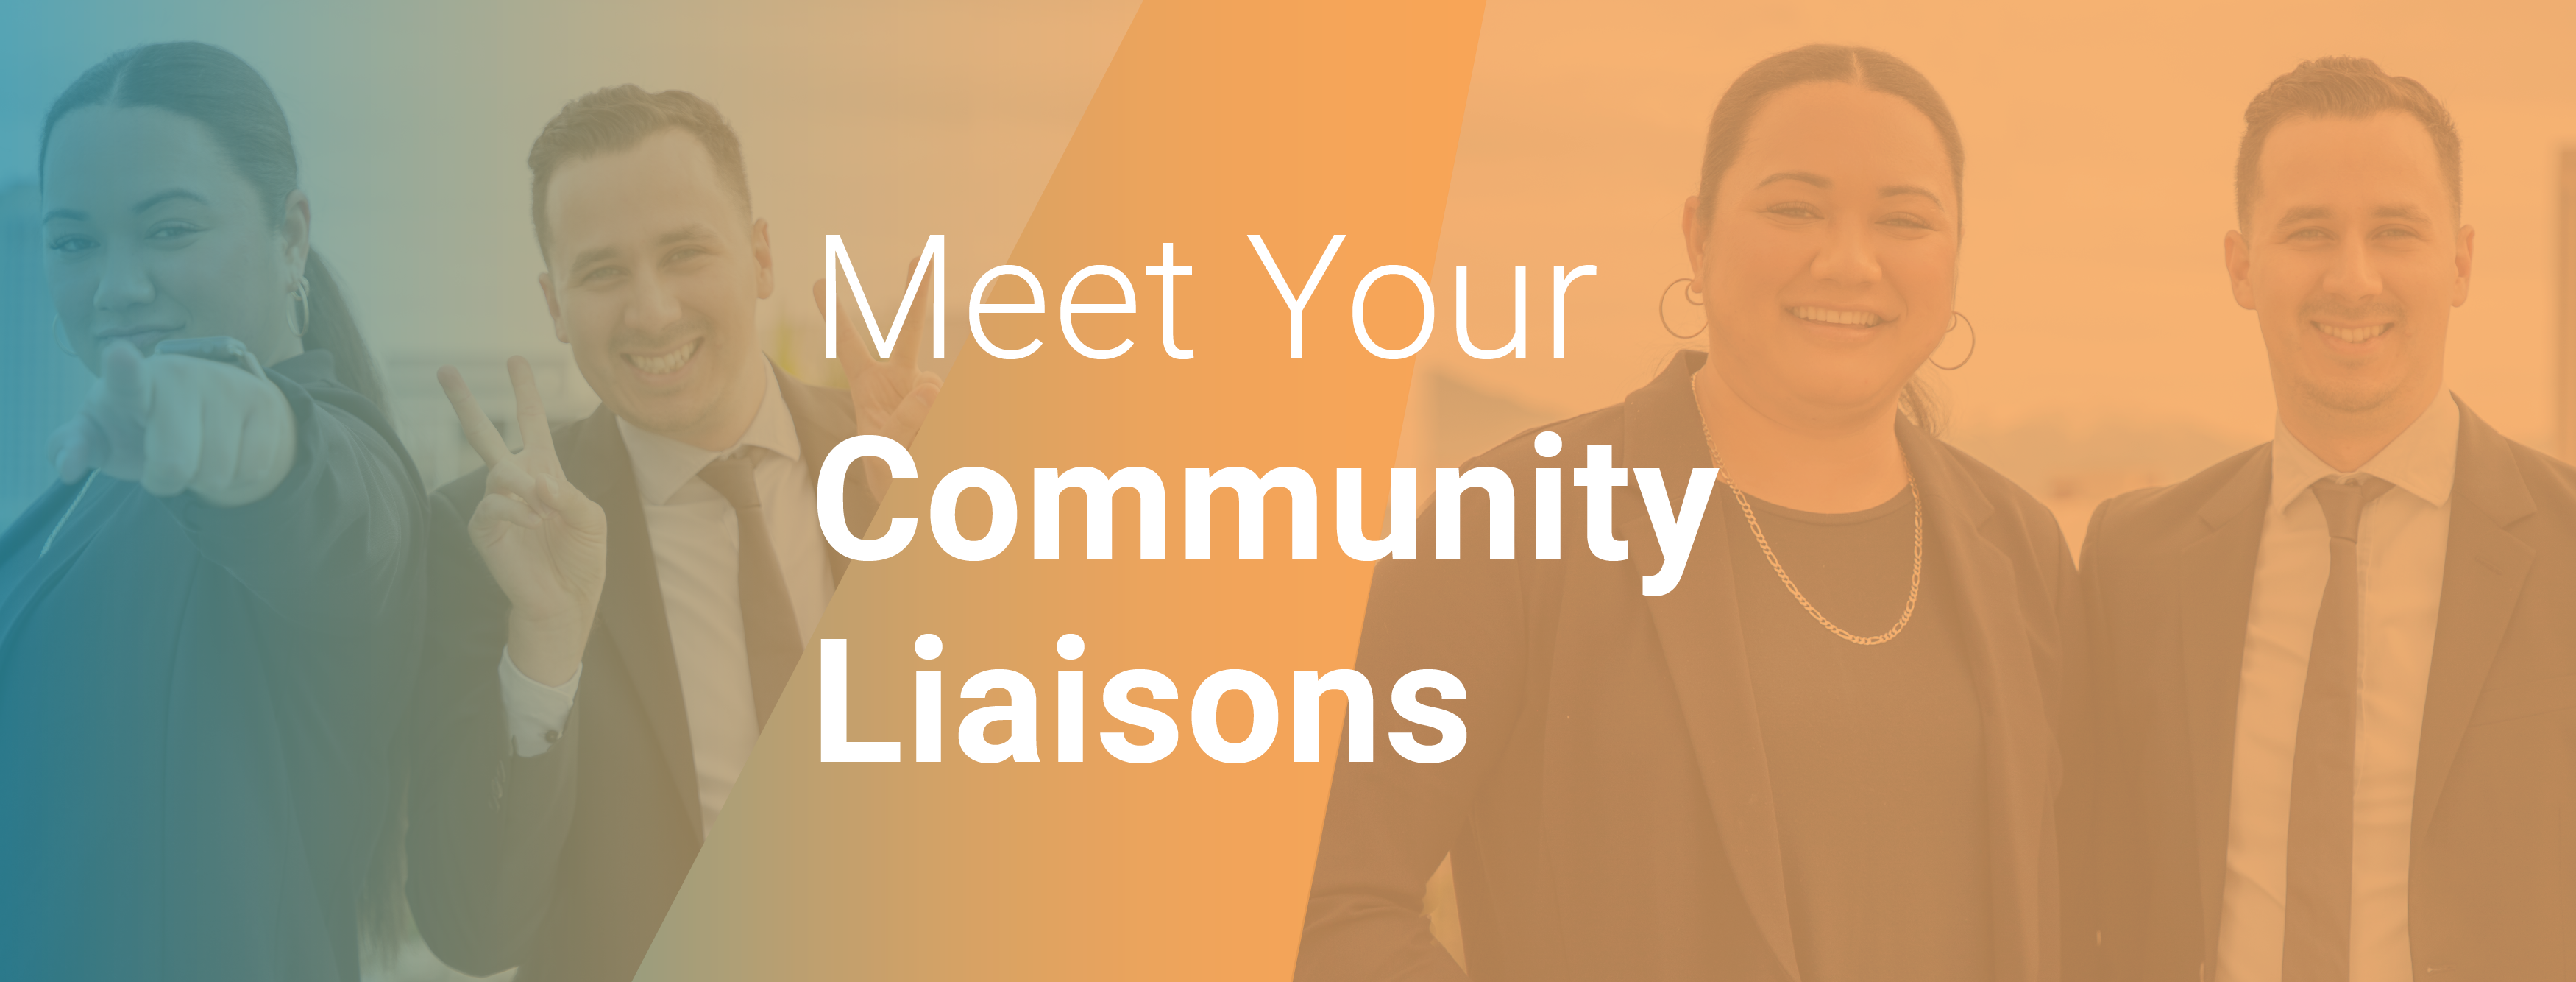 Meet Your Community Liaisons